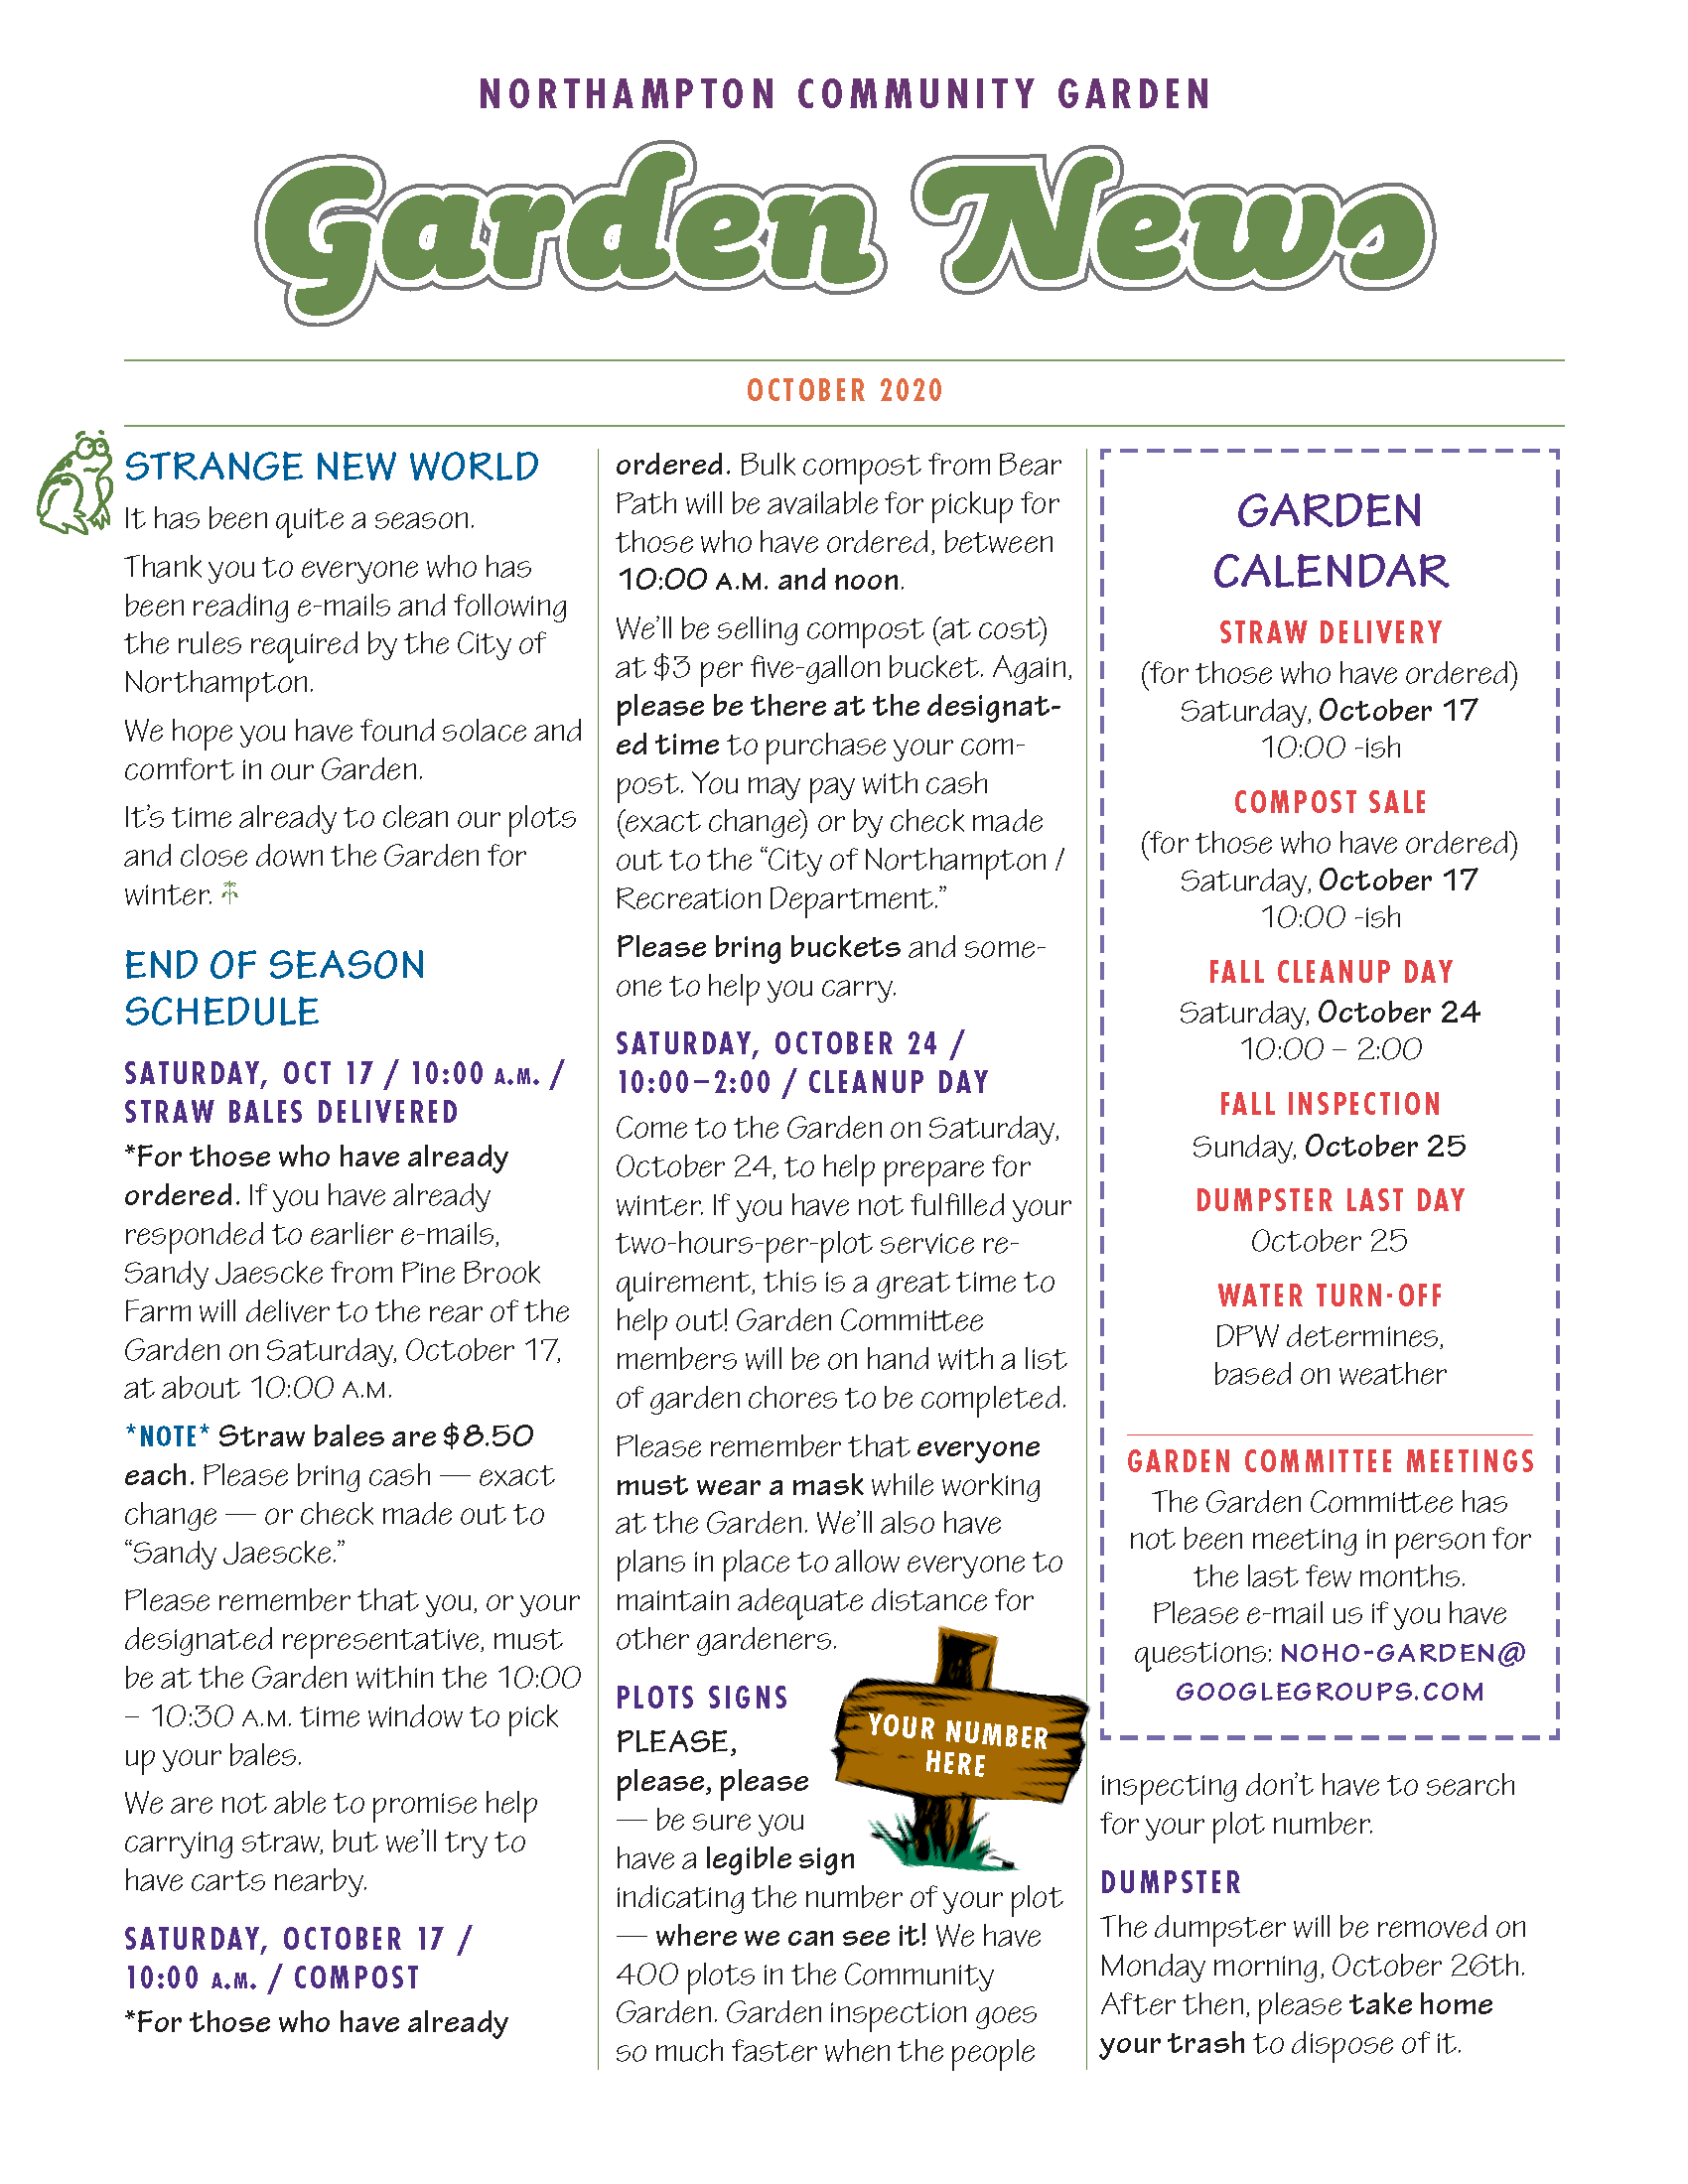 Link to October 2010 Garden Newsletter